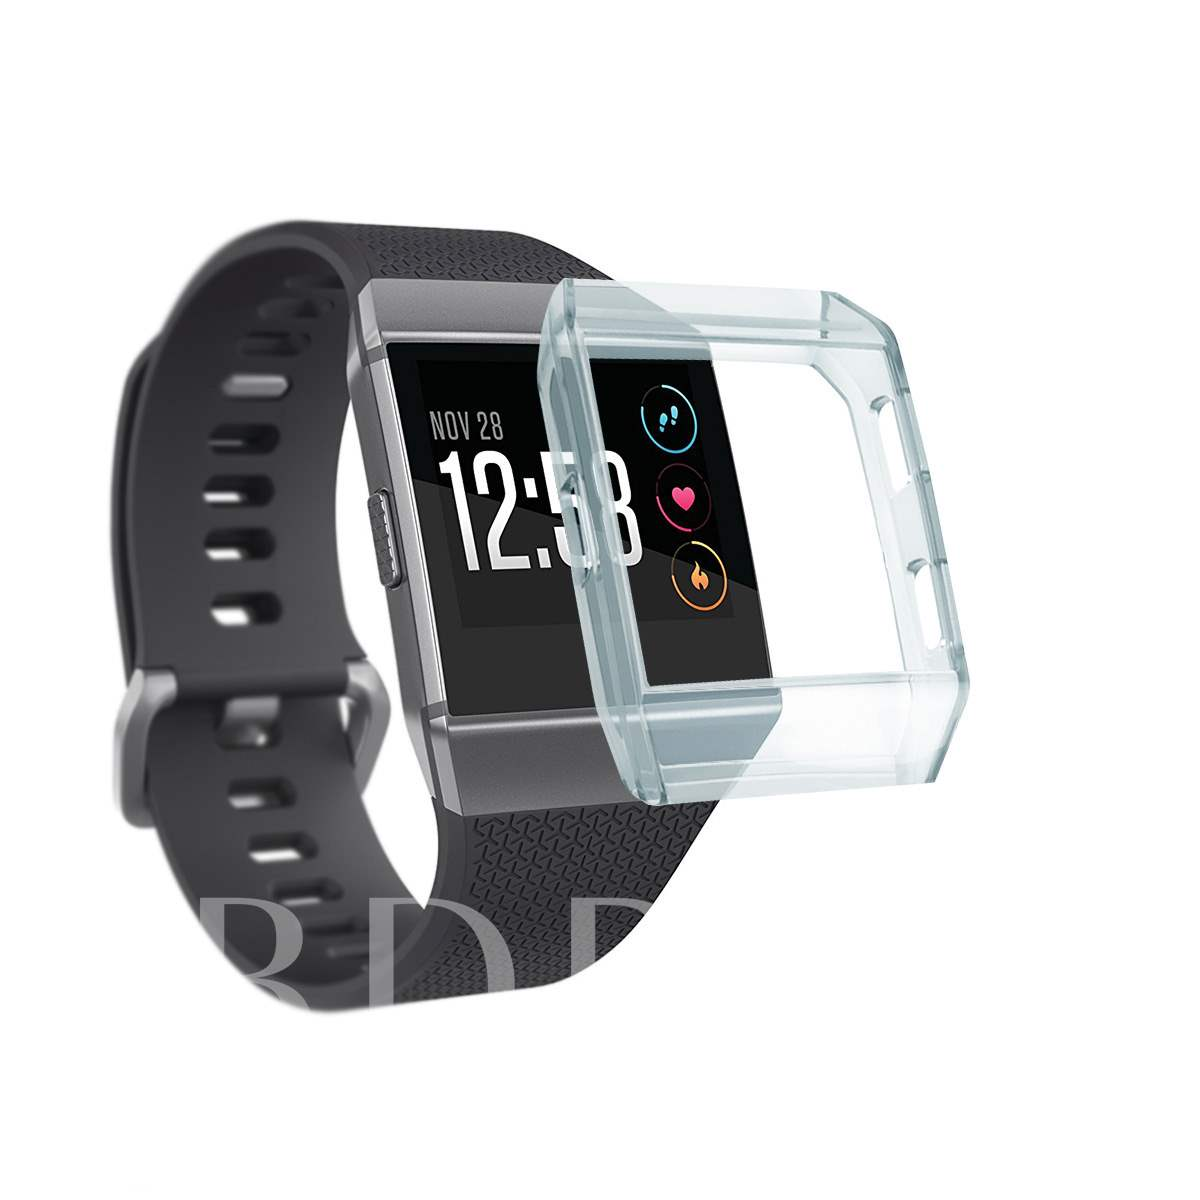 Shock-Proof Shatter-Resistant Rugged Slim Silicone TPU Cover Shell for Fitbit Ionic